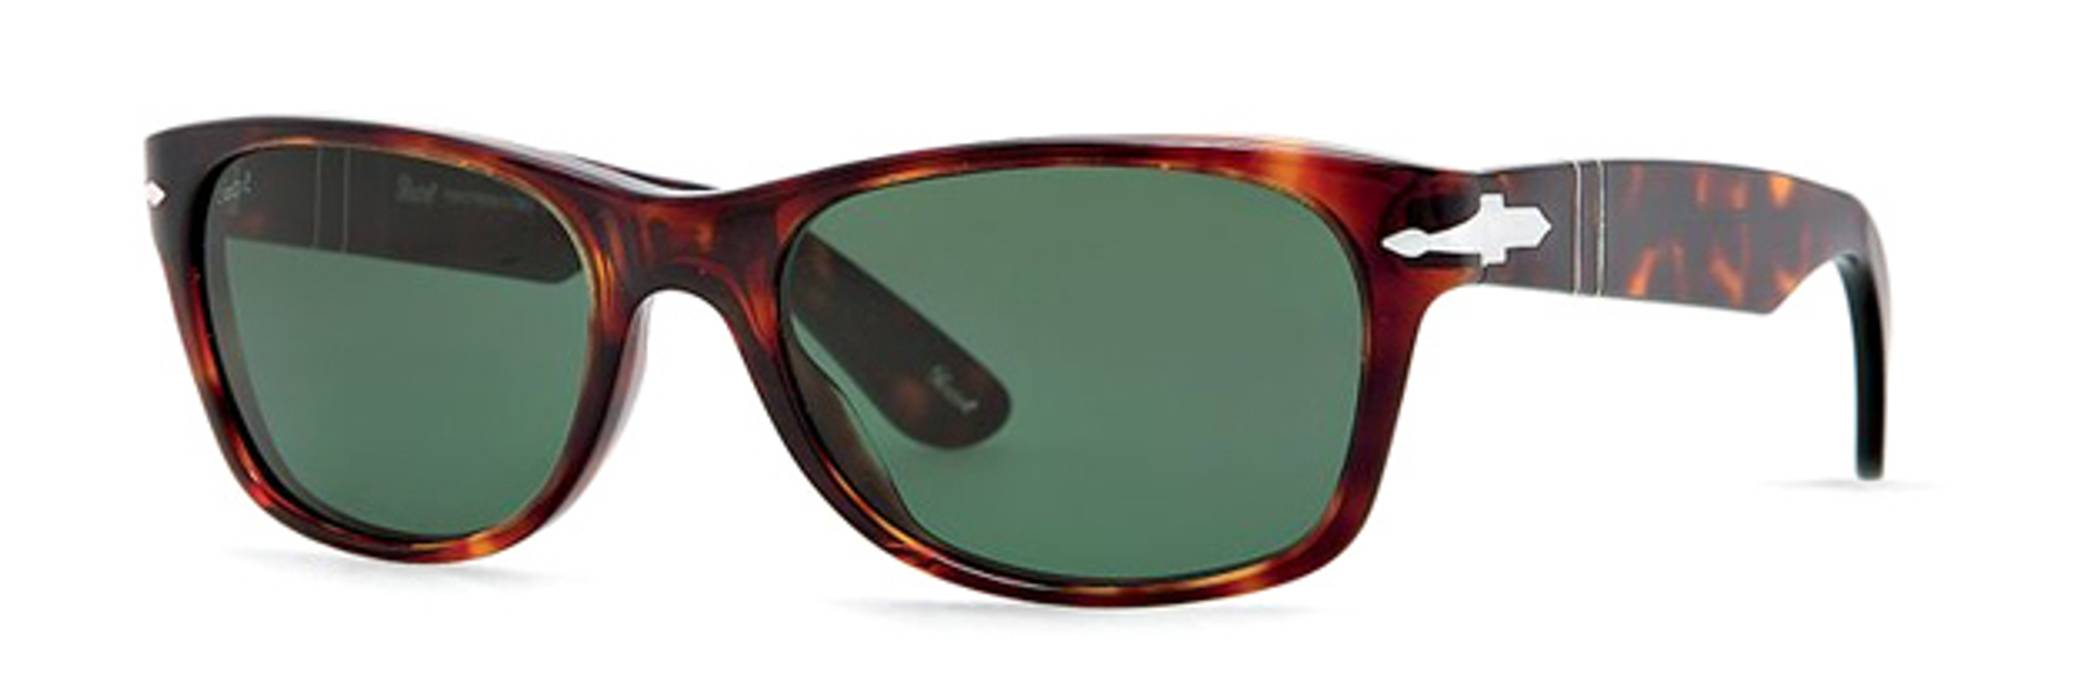 84a8b1c521 Persol 2953 Size one size - for Sale - Grailed